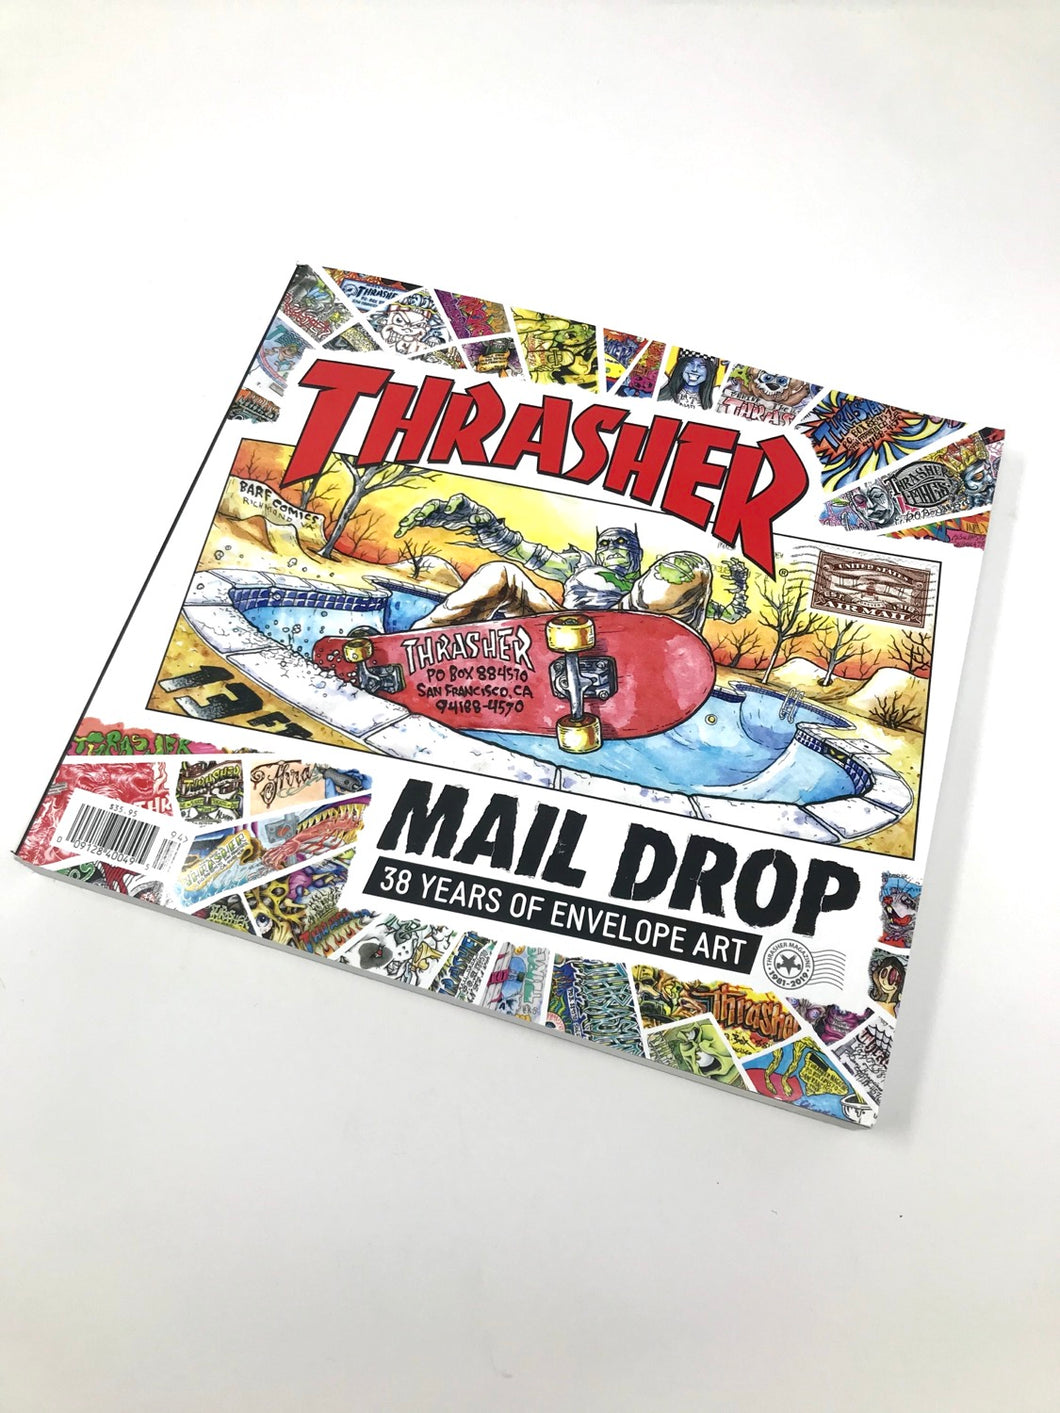 Thrasher 'Mail Drop' Coffee Table Book